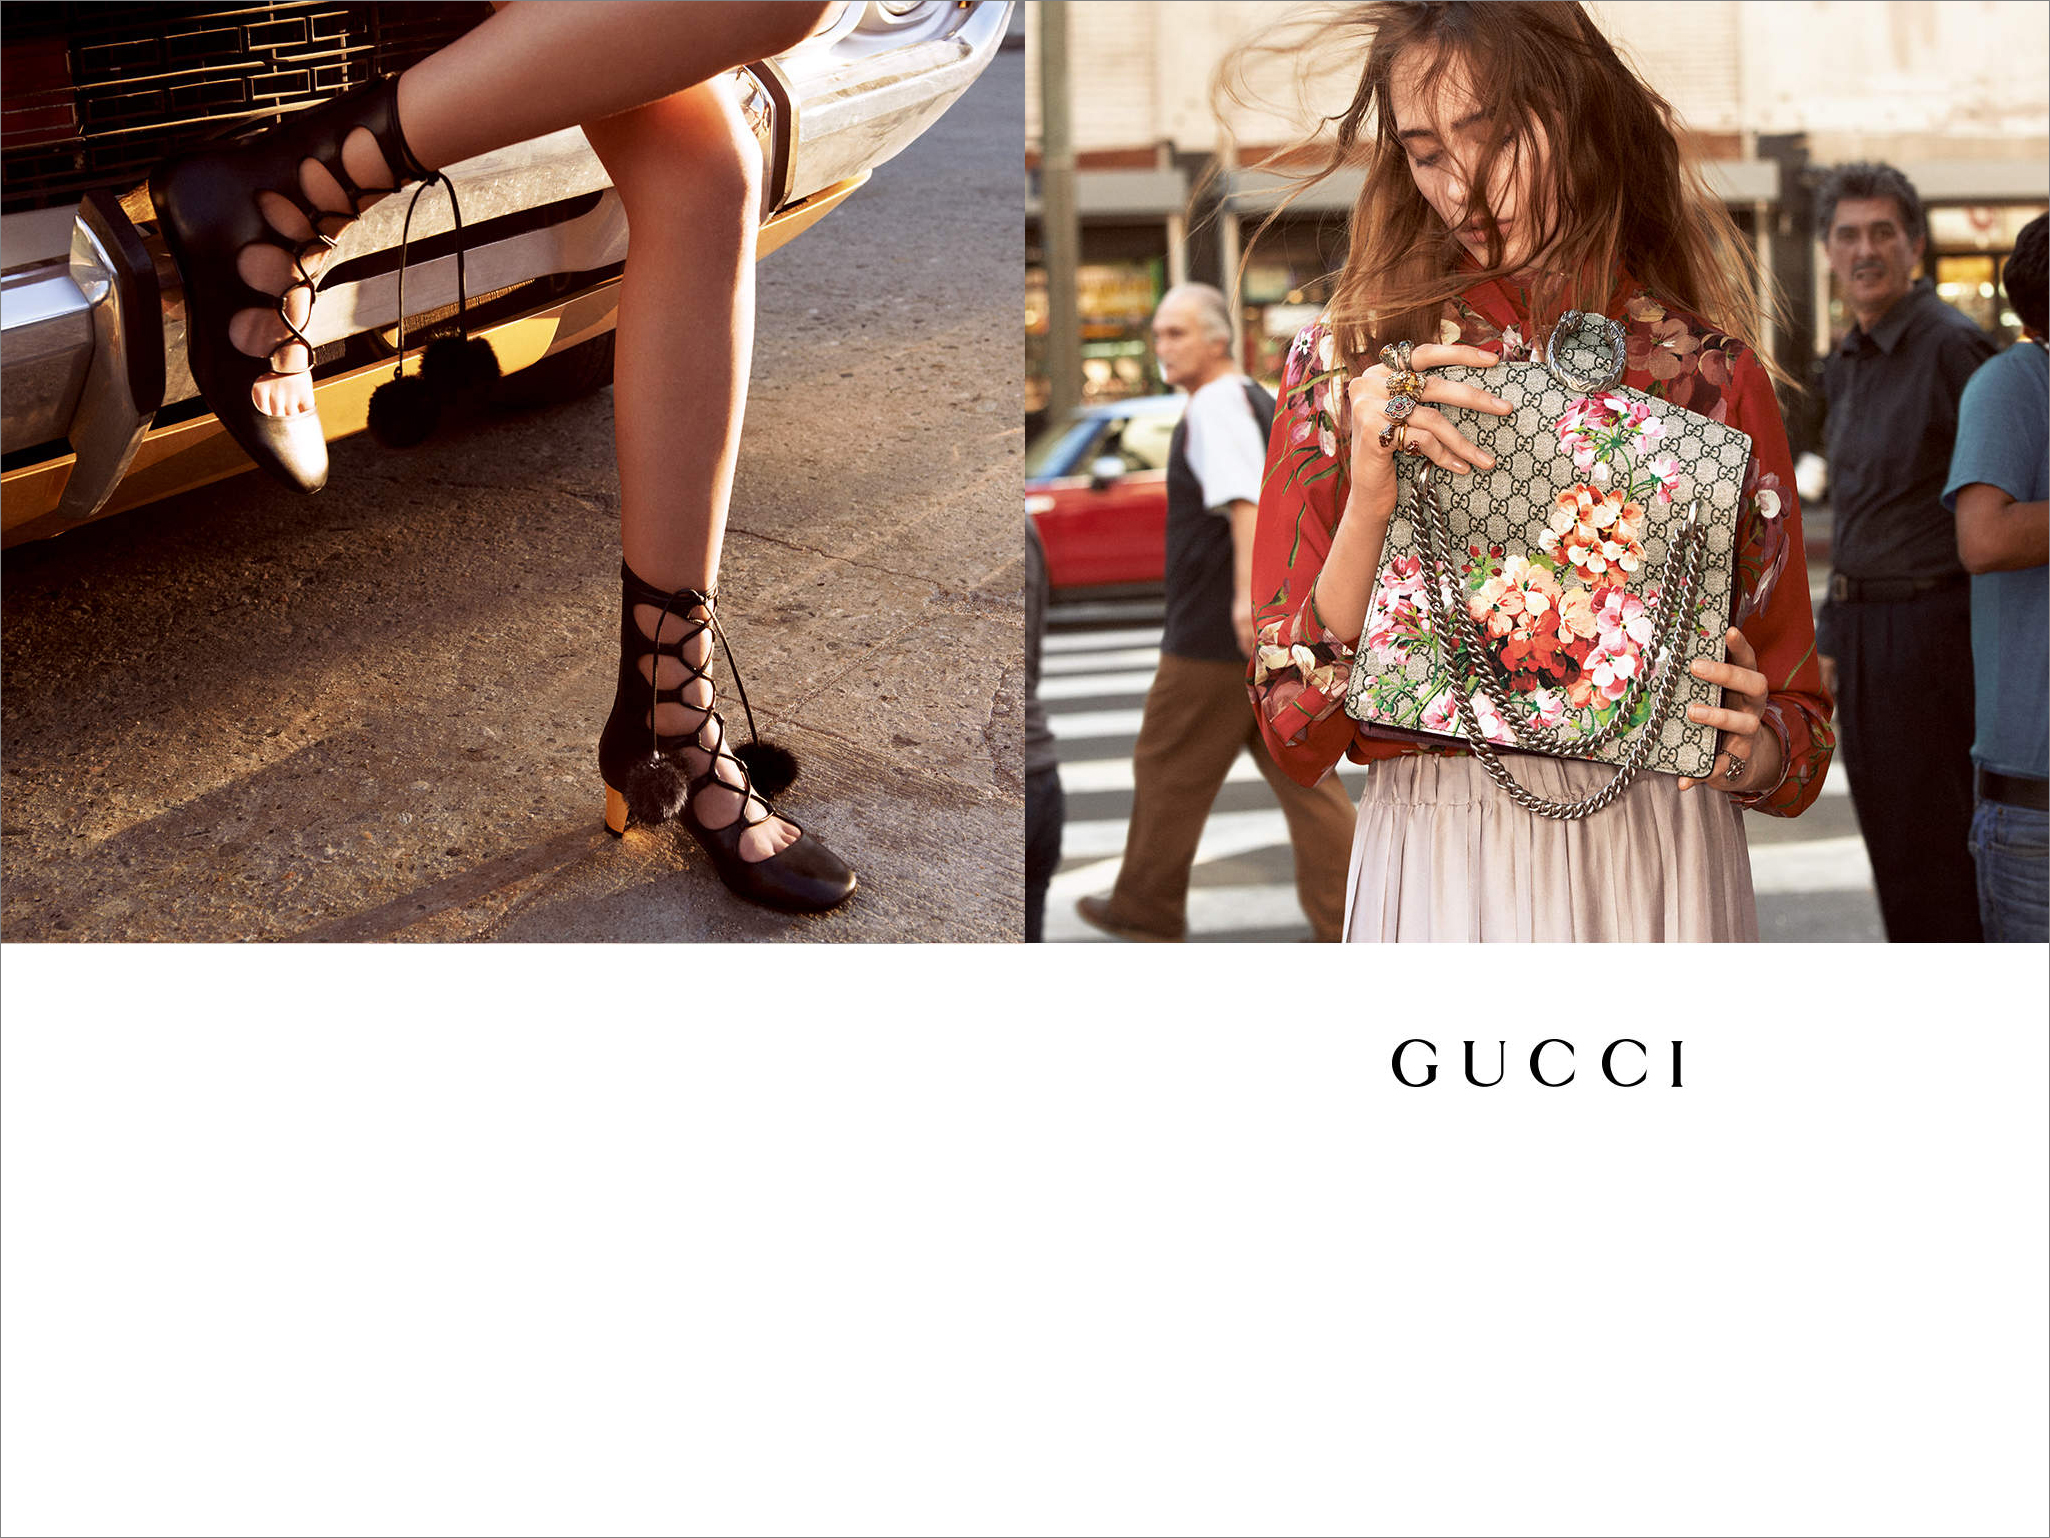 gucci-ad-advertisement-campaign-fall-2015-the-impression-10[1]